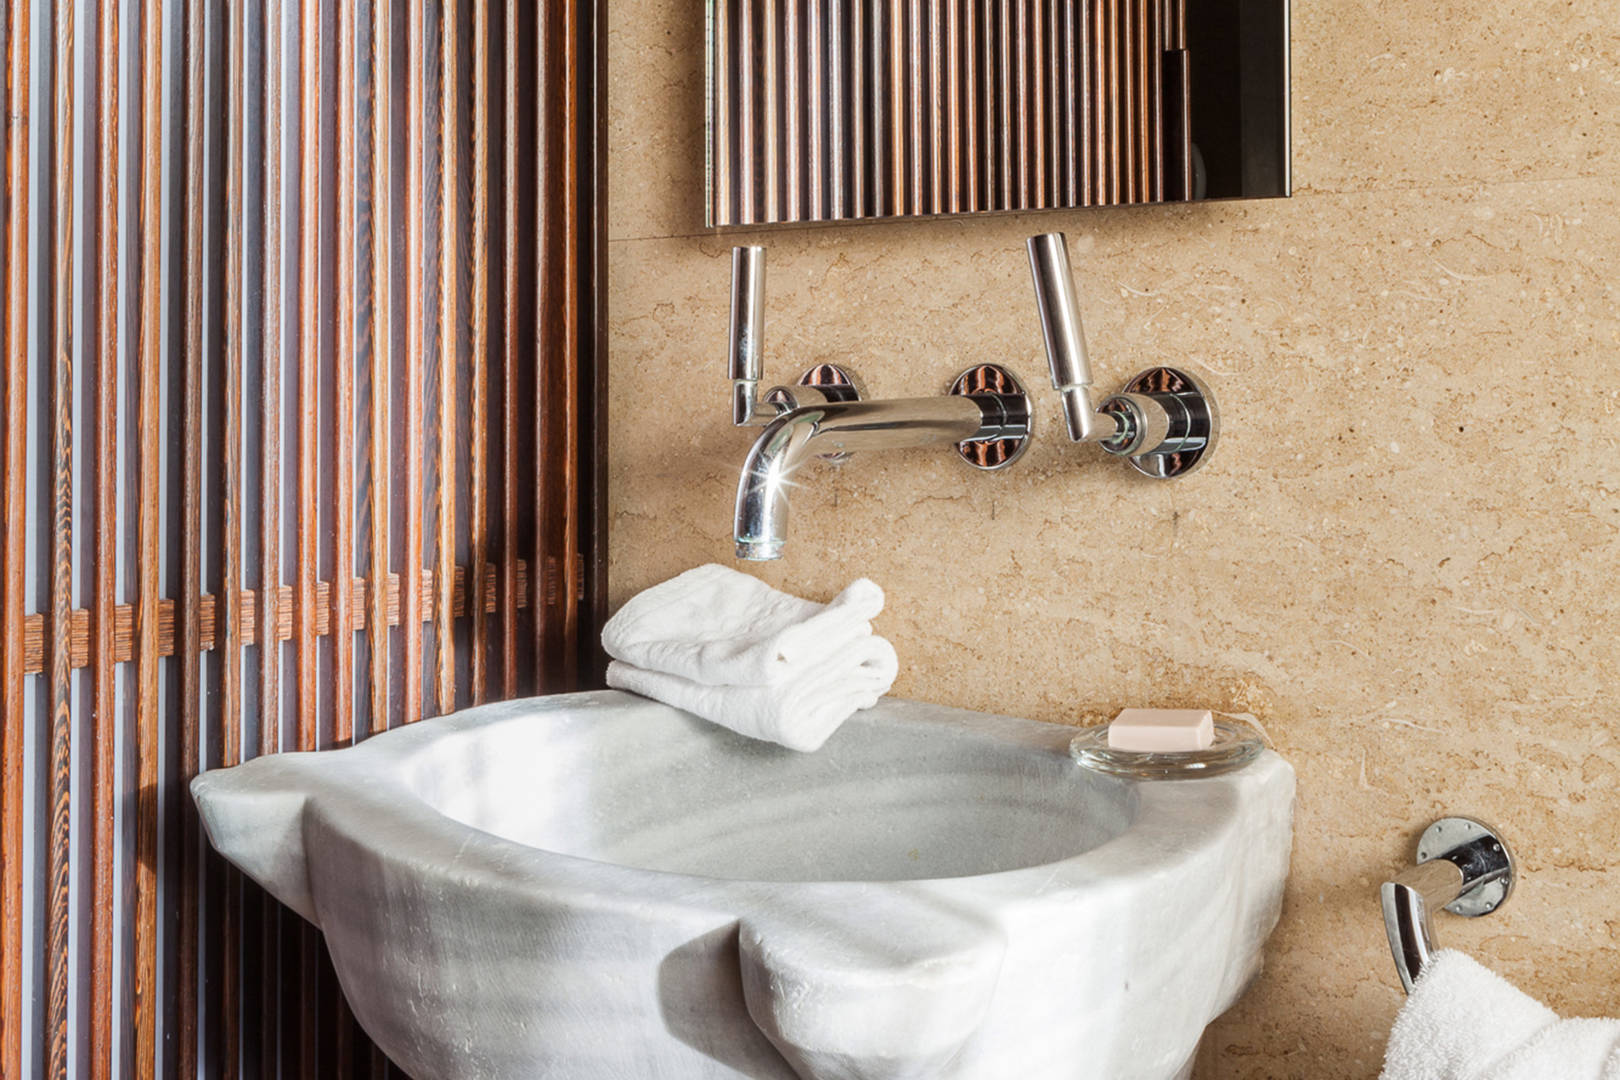 Capri Palace Jumeirah Suites wth Private Pool and Garden Andromeda Bathroom